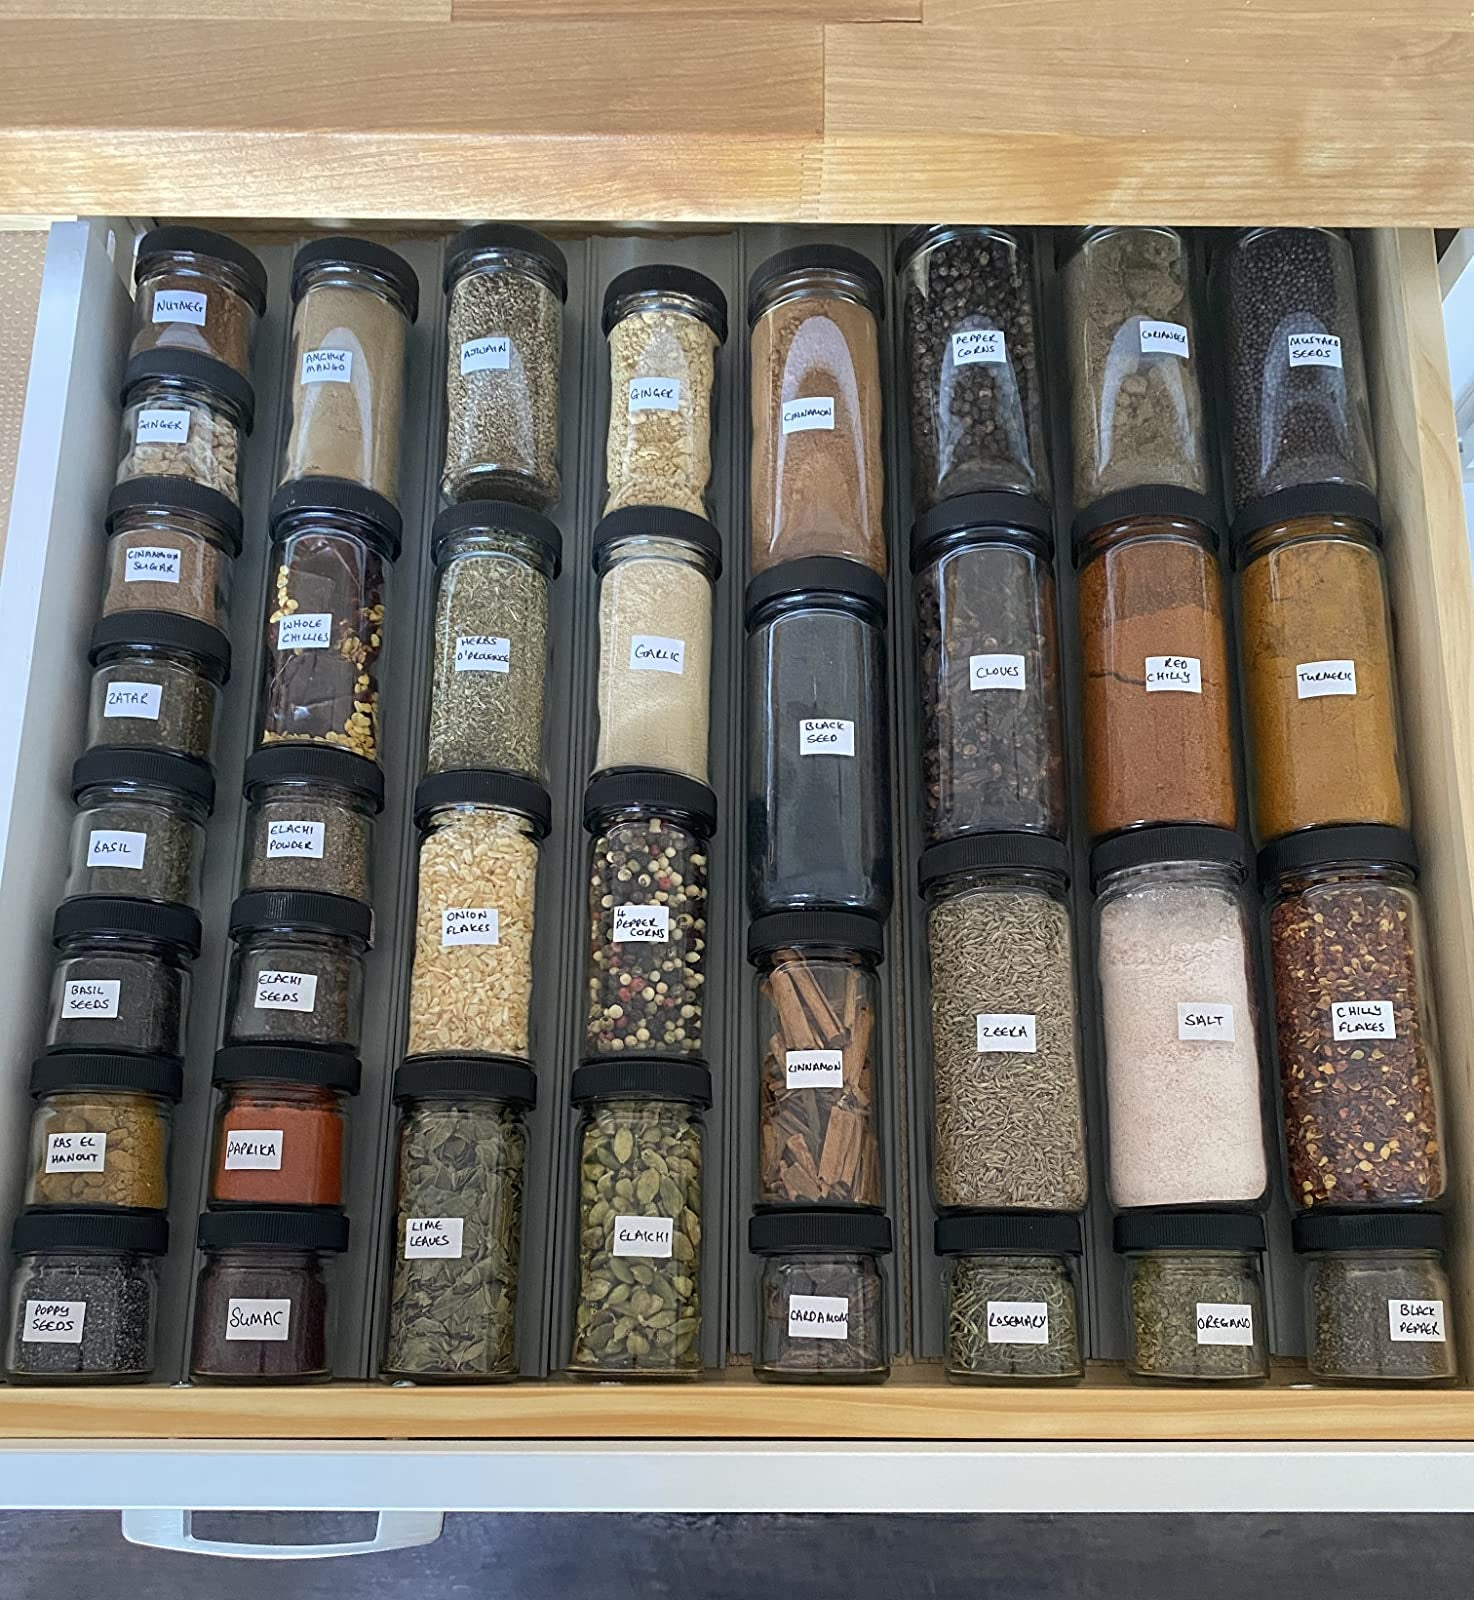 A reviewer's spice bottles neatly lined in a drawer